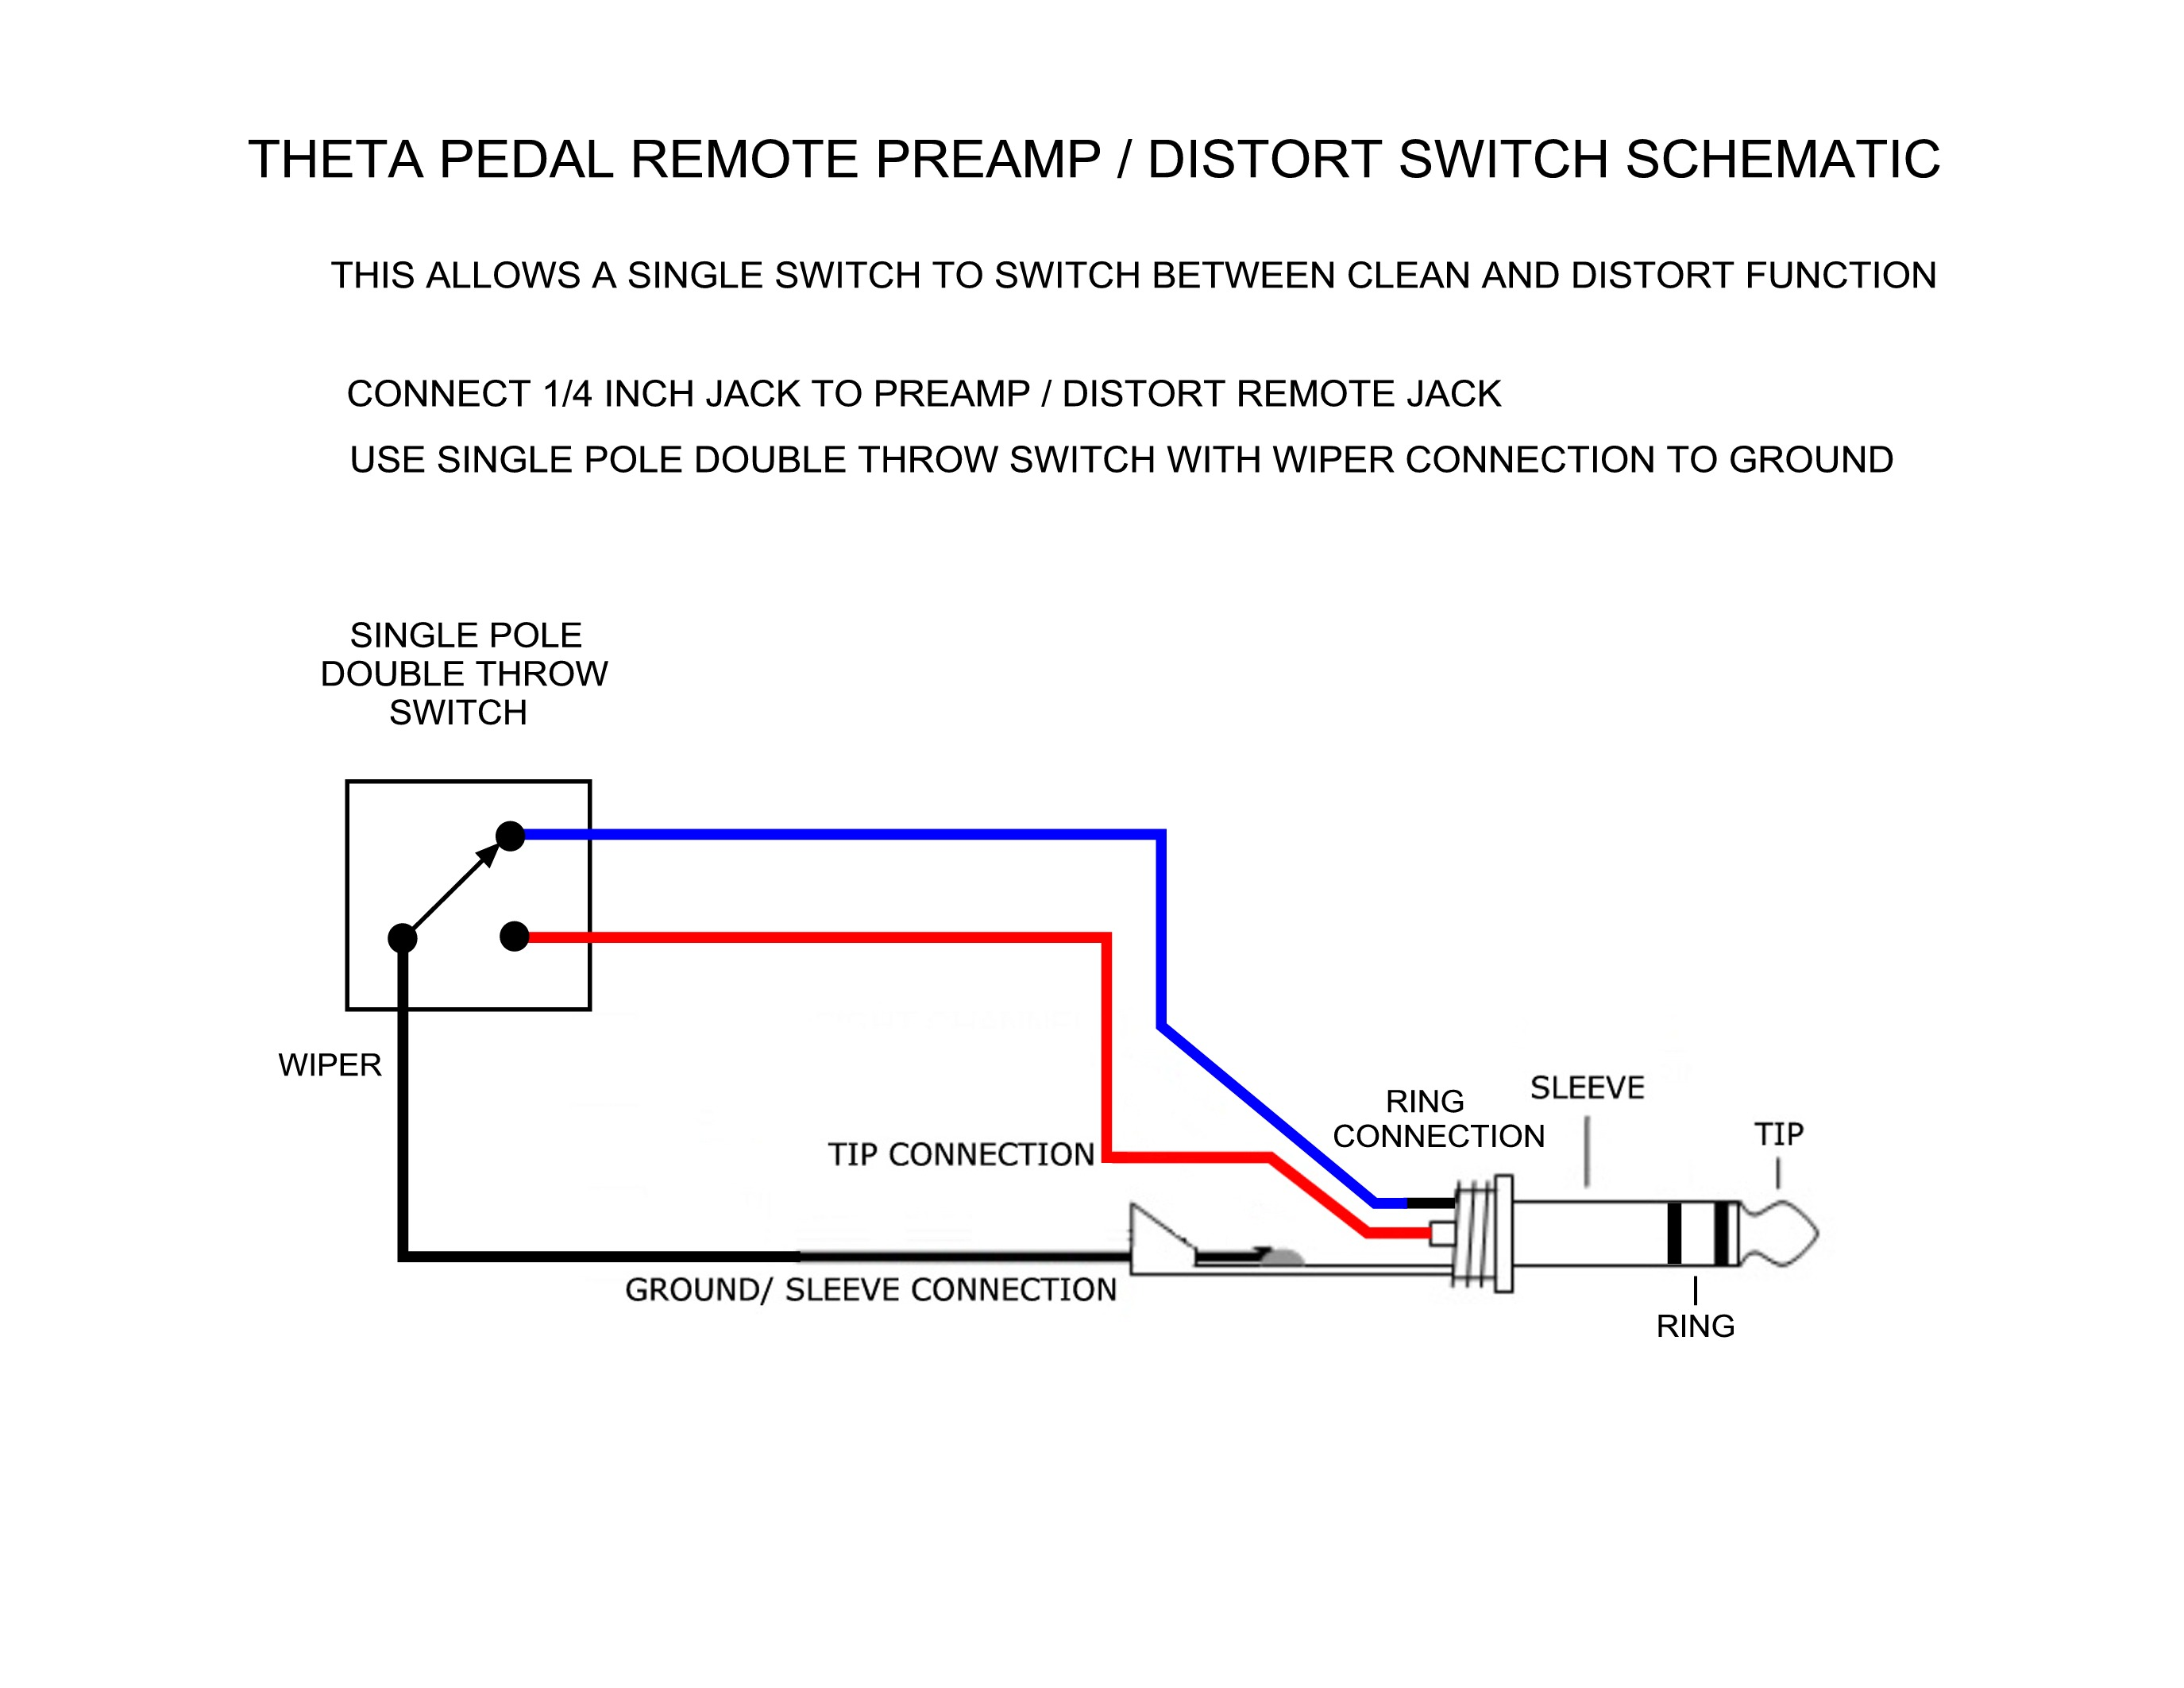 THETA PEDAL REMOTE SWITCH SCHEMATIC